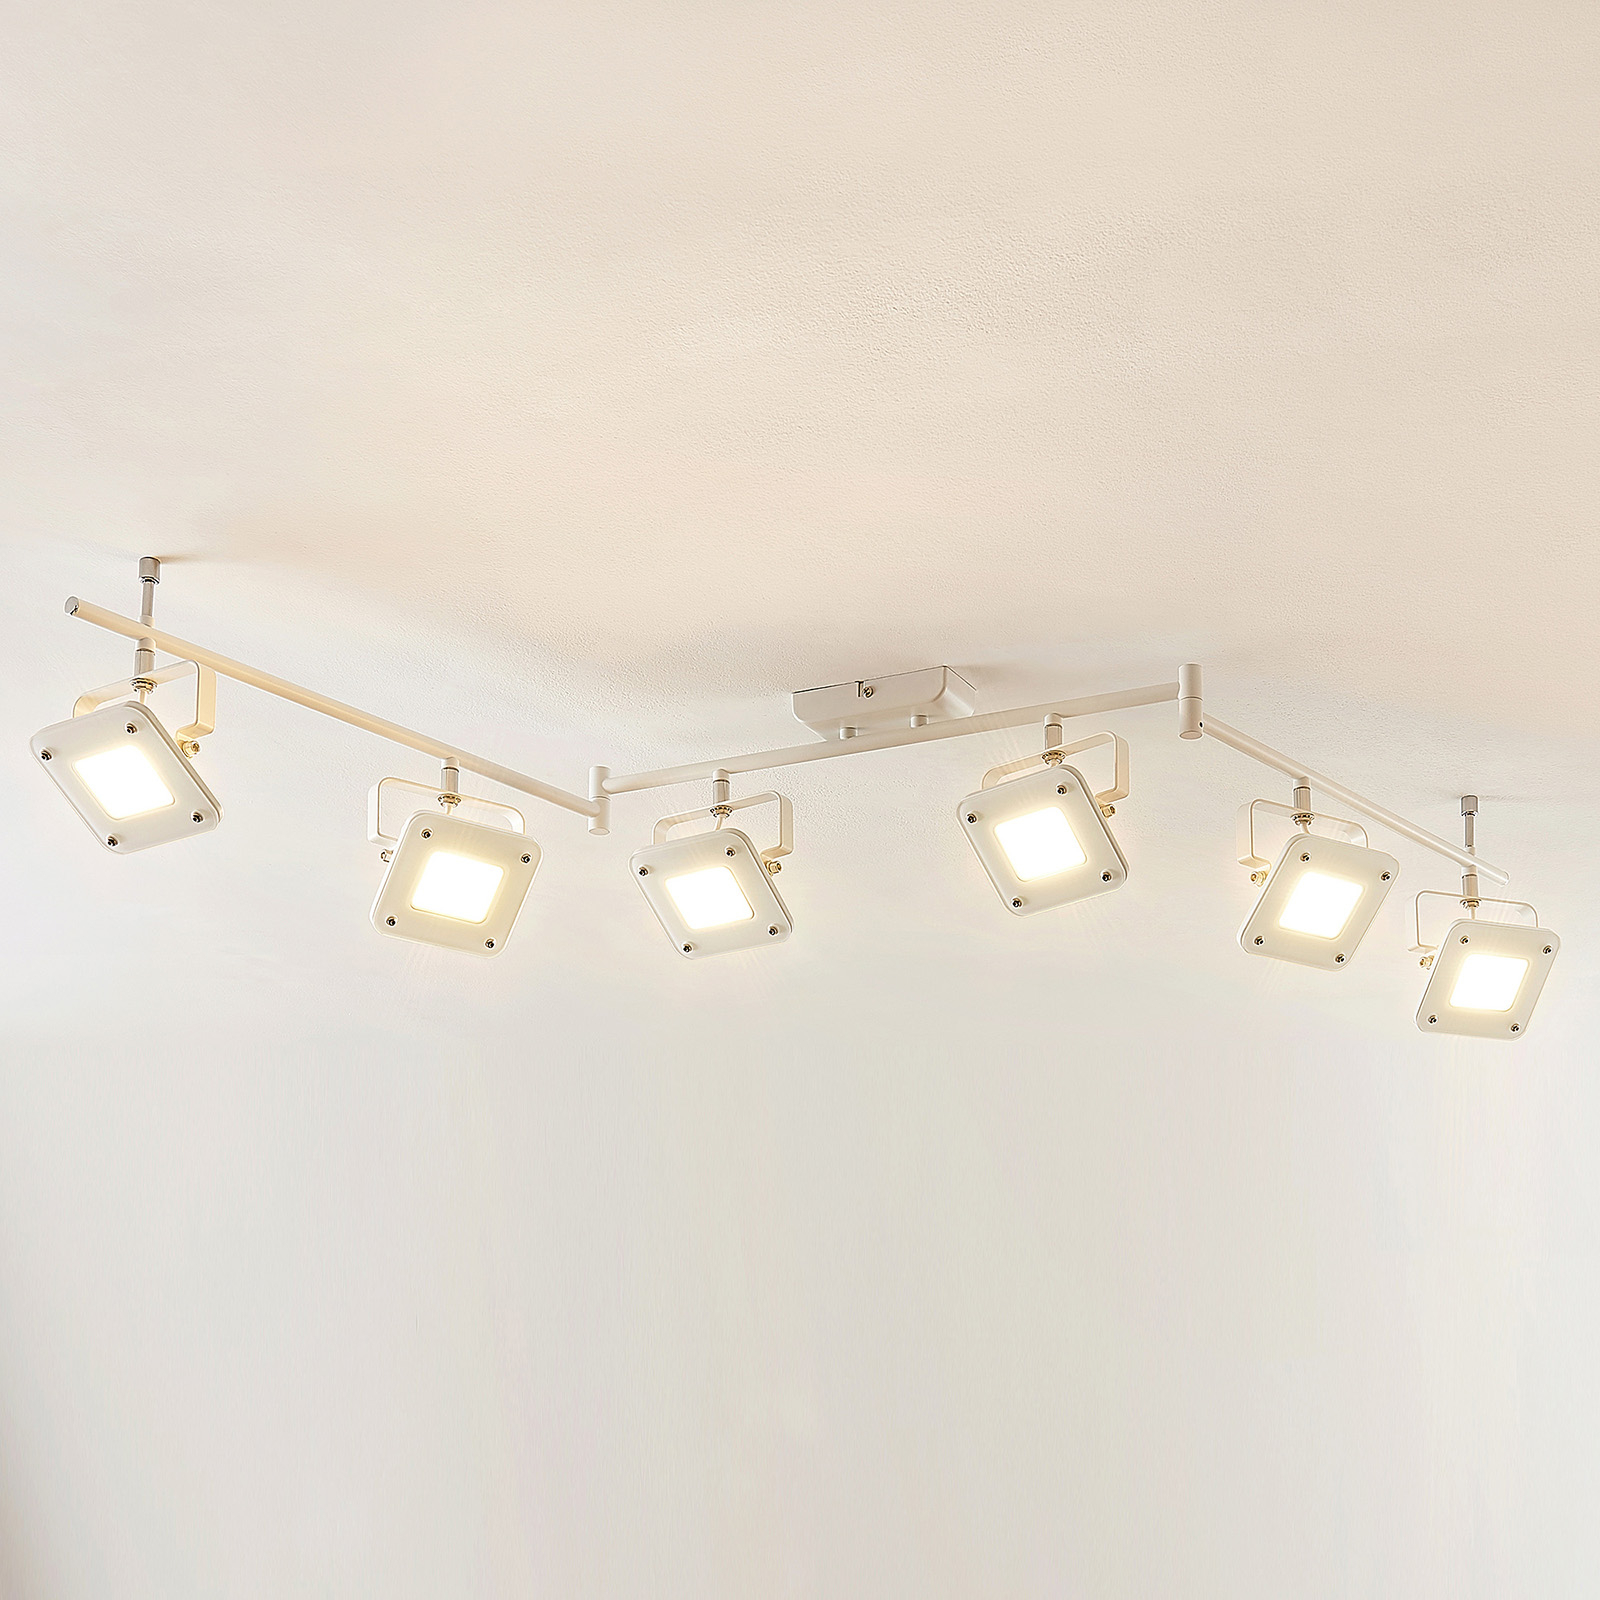 Spot pour plafond LED Juliana, dimmable, 6 lampes